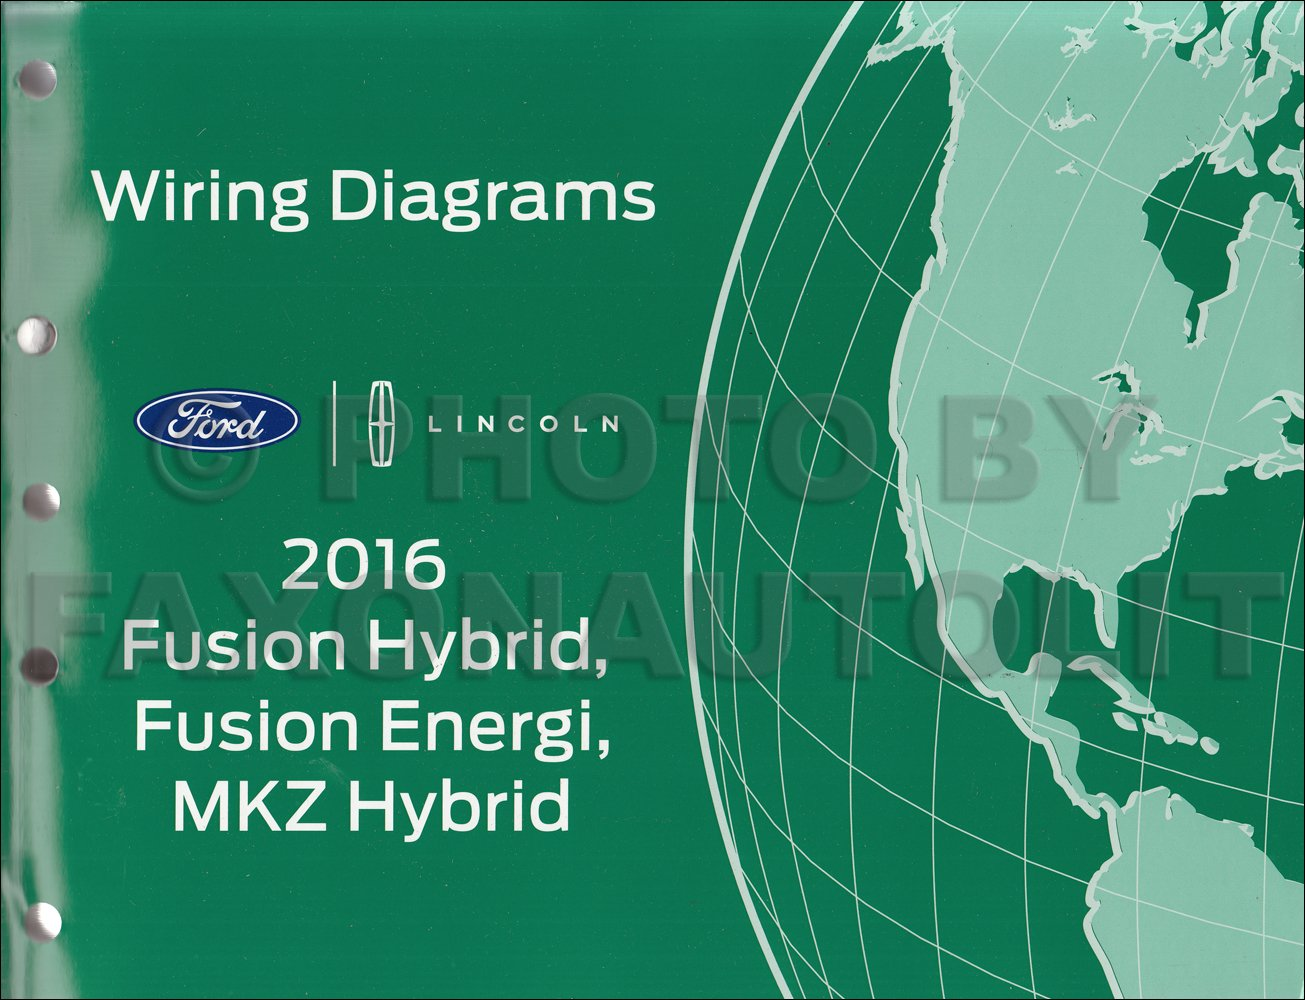 2016 Ford Fusion Energi Hybrid Lincoln MKZ HYBRID Wiring Diagram Manual  Original: Ford: Amazon.com: Books